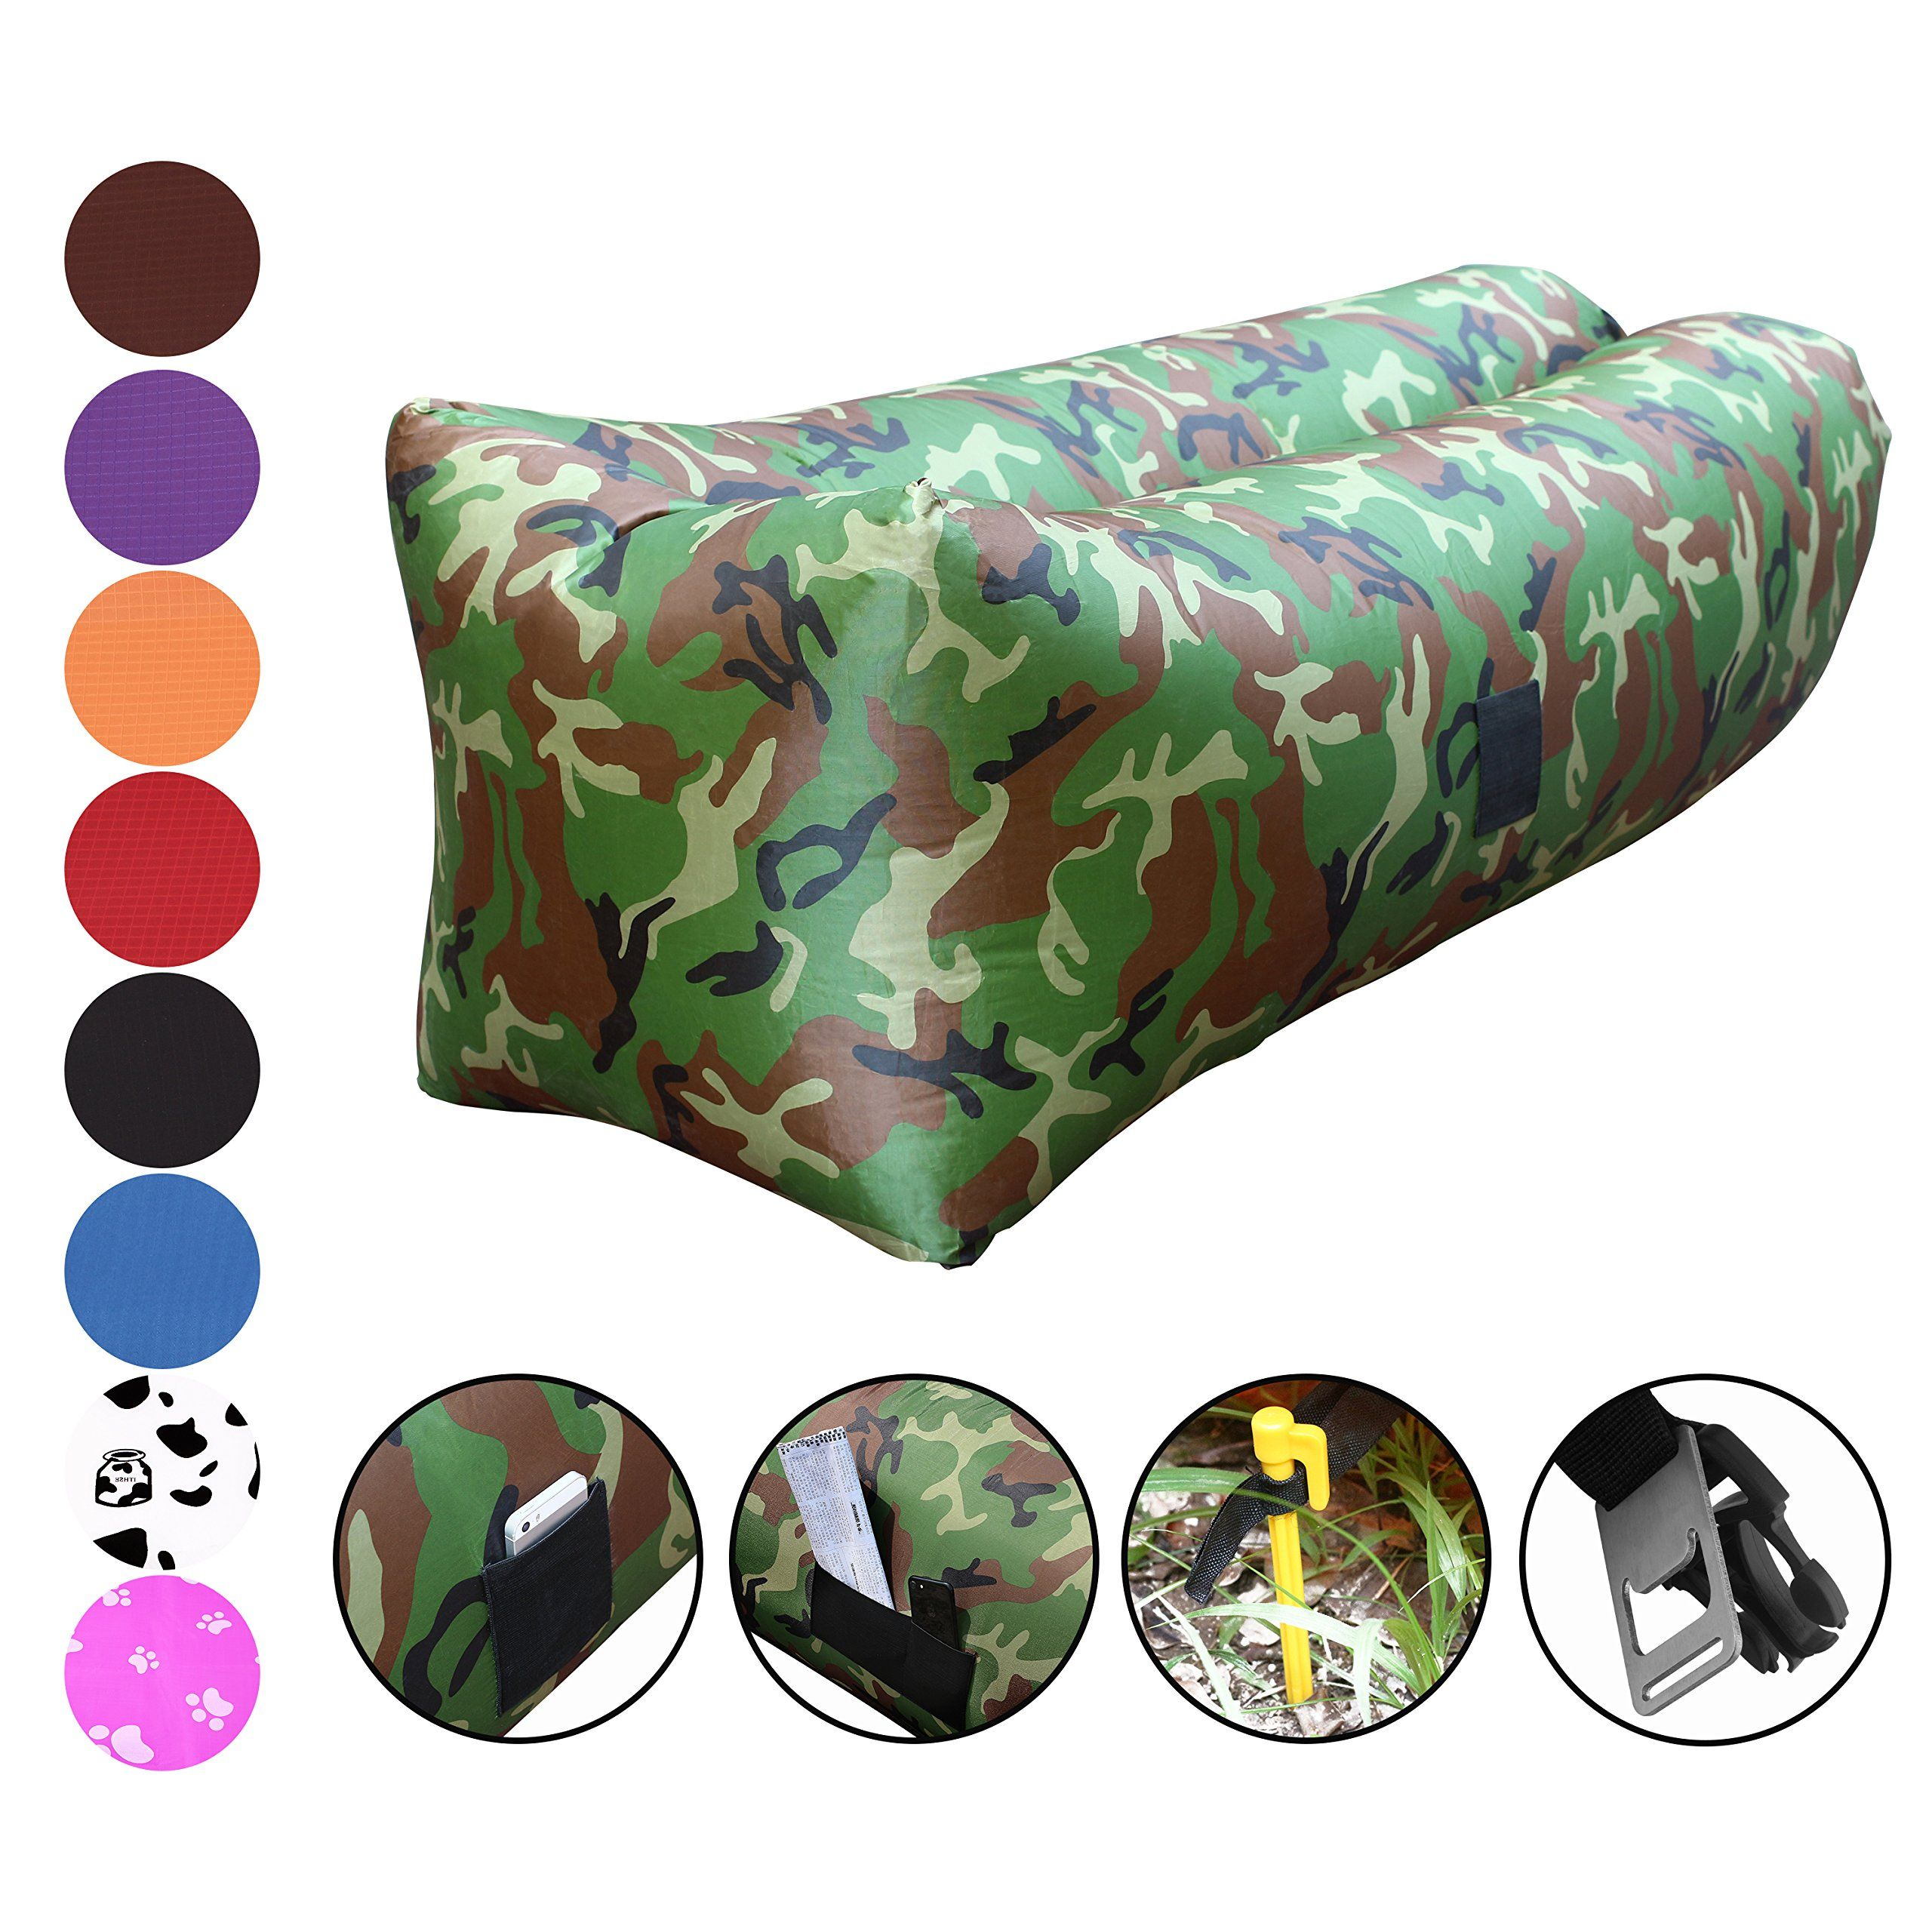 Outstanding Inflatable Couch By Vitchelo Giant Bean Bag Chairs For Kids Theyellowbook Wood Chair Design Ideas Theyellowbookinfo